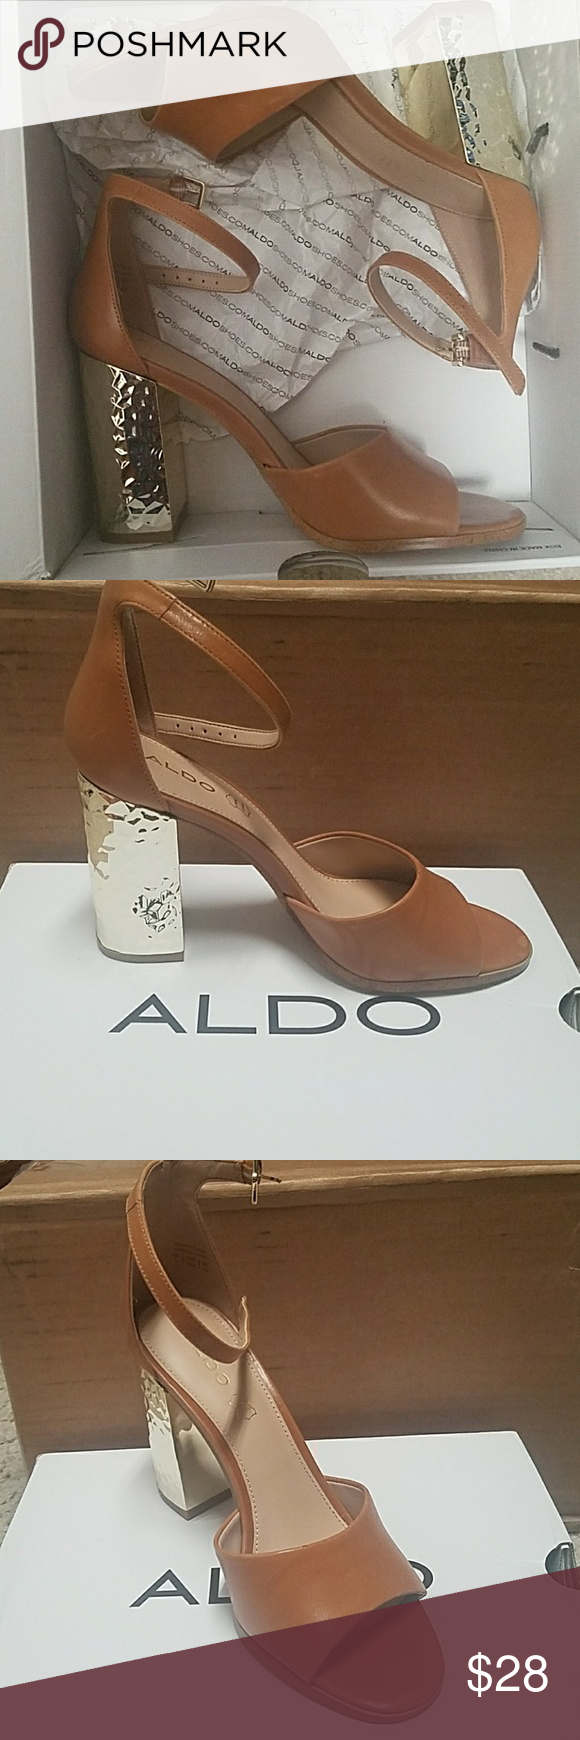 5b765d0e7d7 Aldo Tan Nilia sandal Aldo Nilia sandal, Open toe tan with gold heel ...